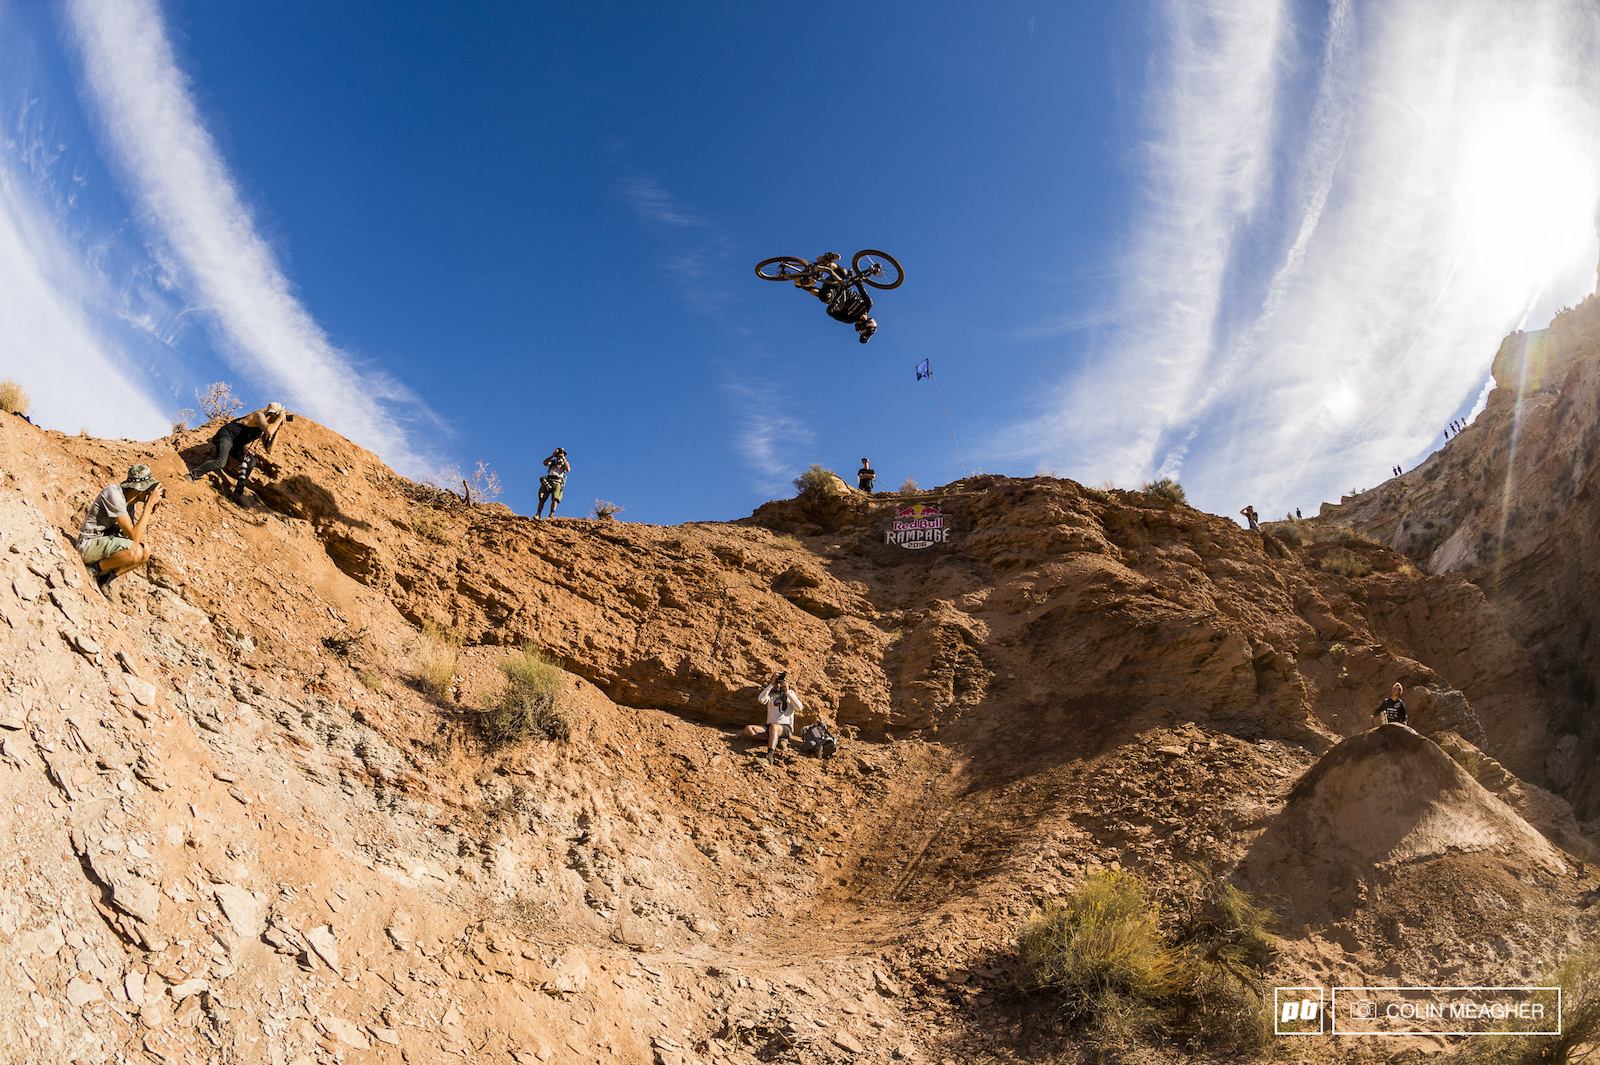 Despite a gnarly rag doll on his eject Semenuk stepped it up and sent it a few minutes later with a flat spin 3.